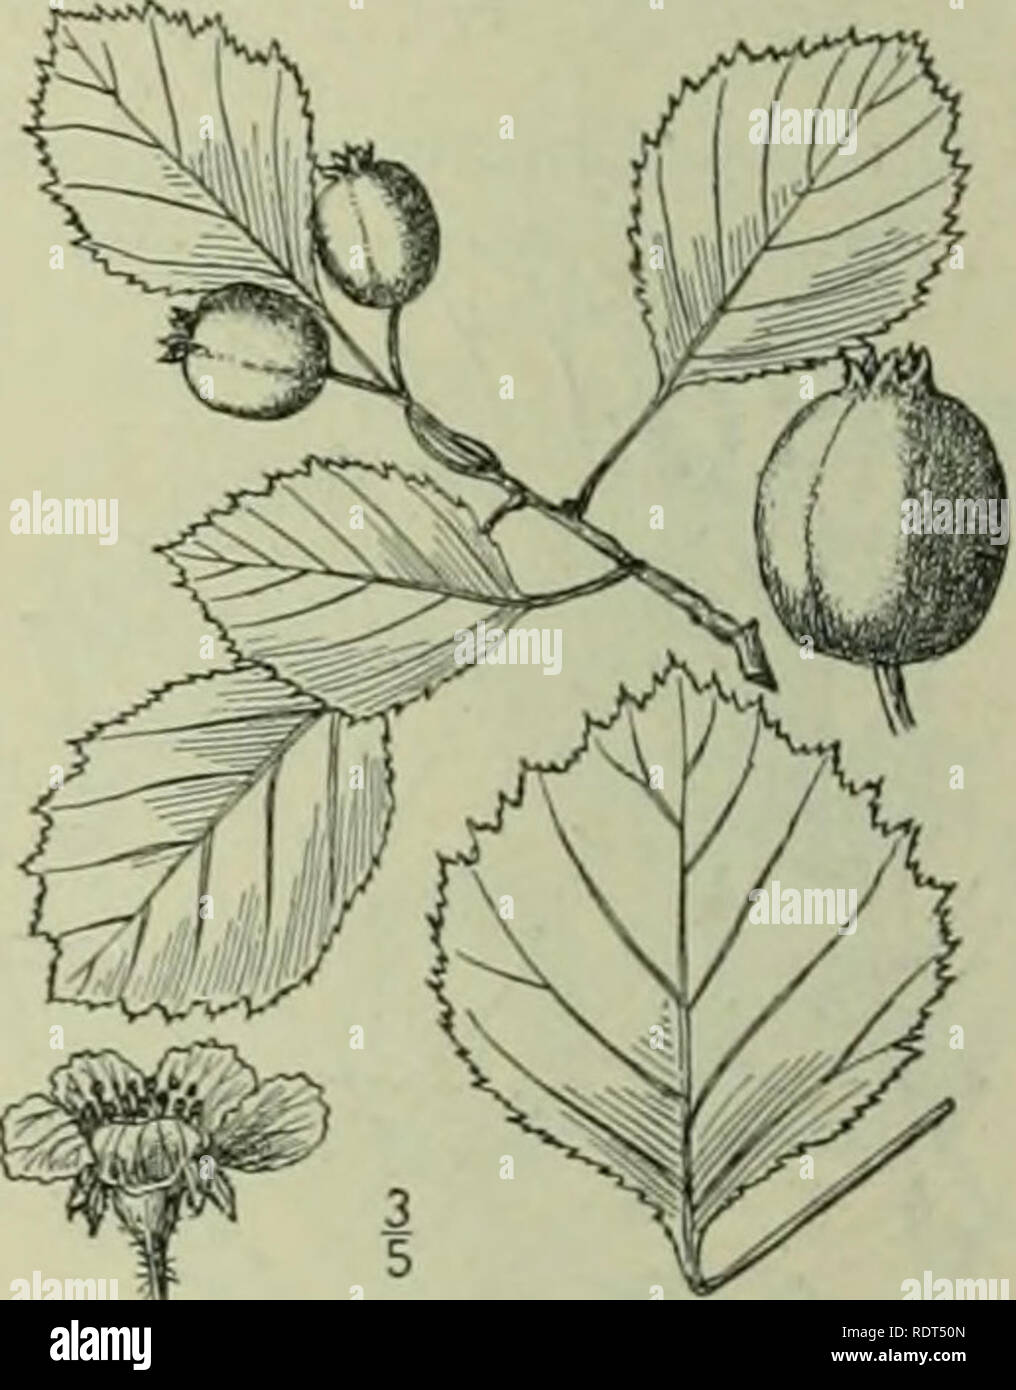 . An illustrated flora of the northern United States, Canada and the British possessions : from Newfoundland to the parallel of the southern boundary of Virginia and from the Atlantic Ocean westward to the 102nd meridian. Botany. Mespilus rotundifolia Ehrh. Beitr. 3: 30. 17S8. Crataegus rotundifolia Borckh. in Roem. Arch, i': 87. 1798. Not Lam. Ency. 1: 84. 1783. Crataegus chrysocarpa Ashe, Bull. N. Car. Agri. Coll. 175: no. 1900. C. sheridana A. Nelson, Hot. Gaz. 34: 370. 1902. C. Doddsii Ramaley, Hot. Gaz. 46: 5 : 381. 1908. . beautiful round-topped shrub, or a tree occa- sionally 25° high, Stock Photo